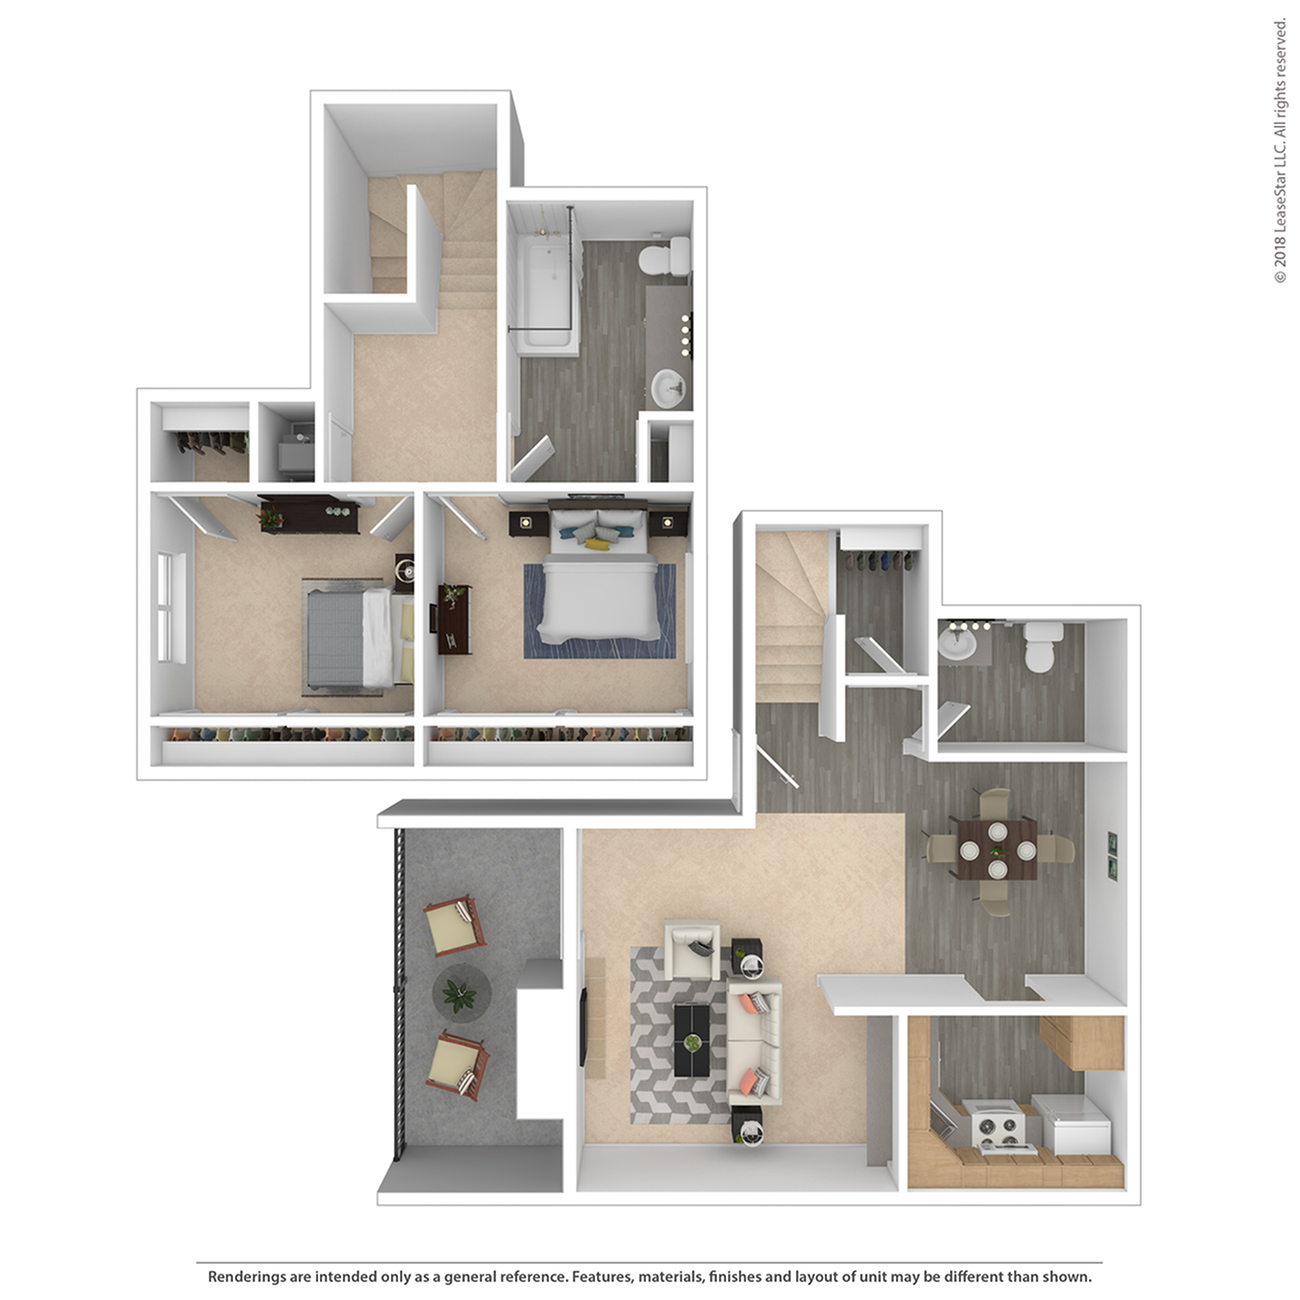 2 Bdrm Floor Plan | Apartments For Rent In The Denver Area | The Lodge on 84th